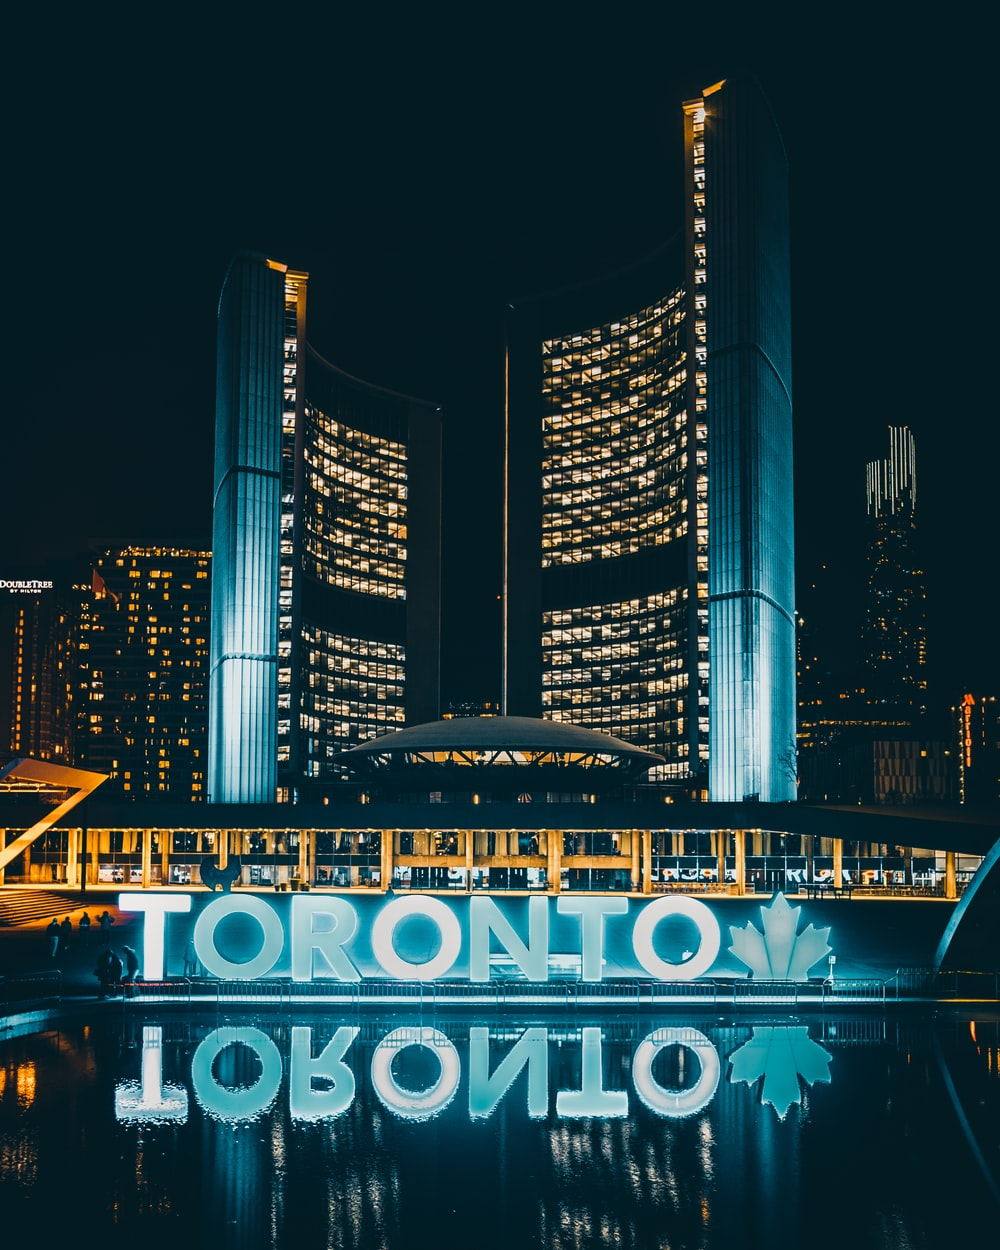 Toronto at nighttime